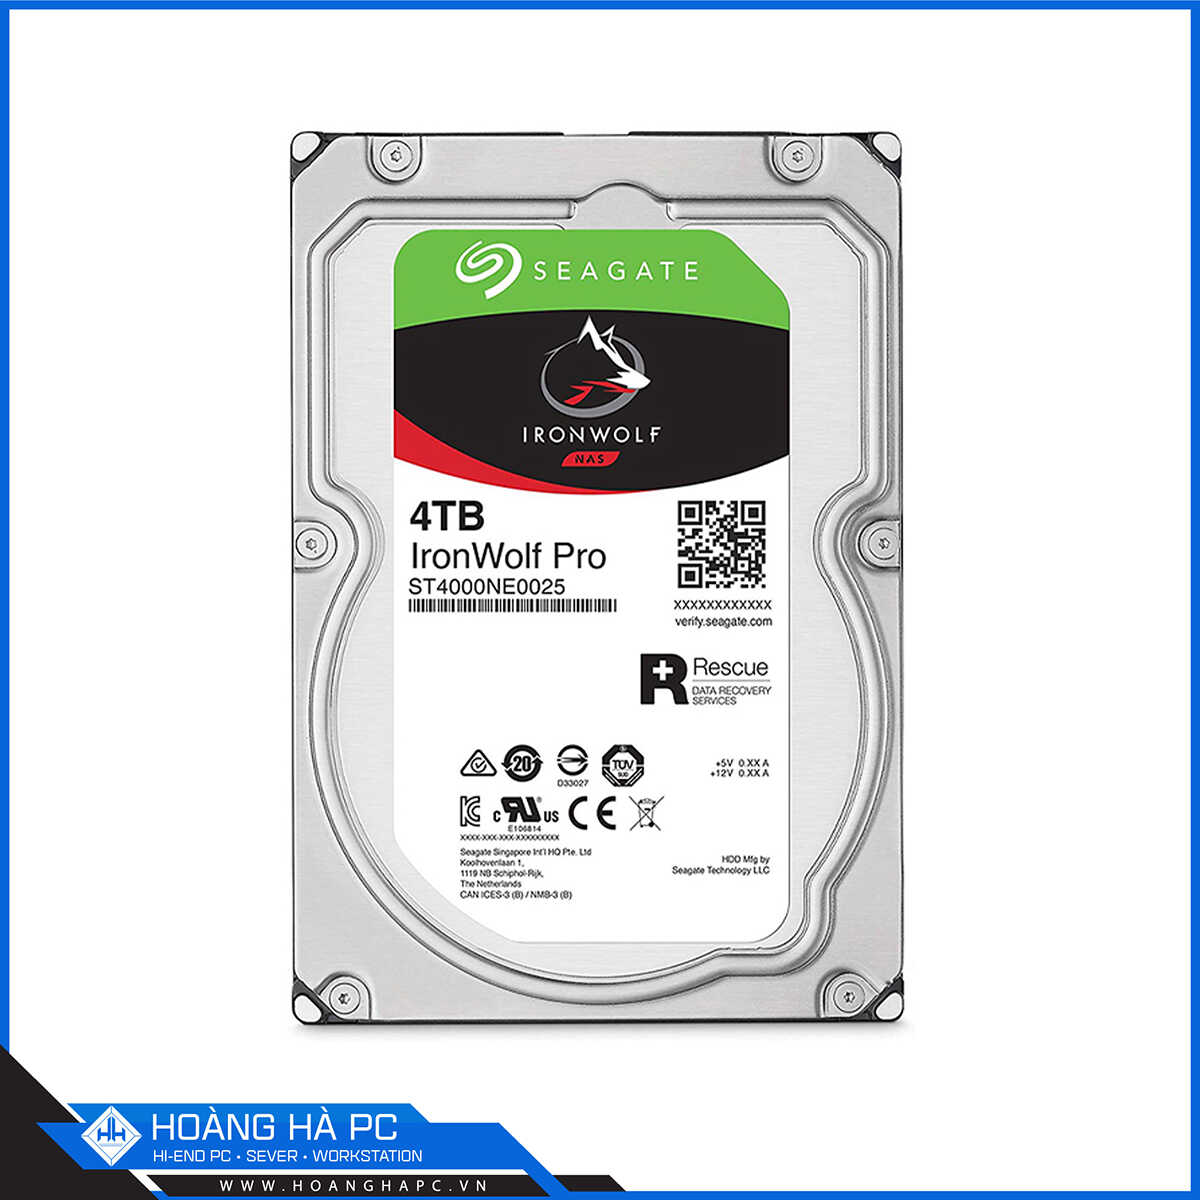 Ổ Cứng HDD Seagate Ironwolf Pro 4TB